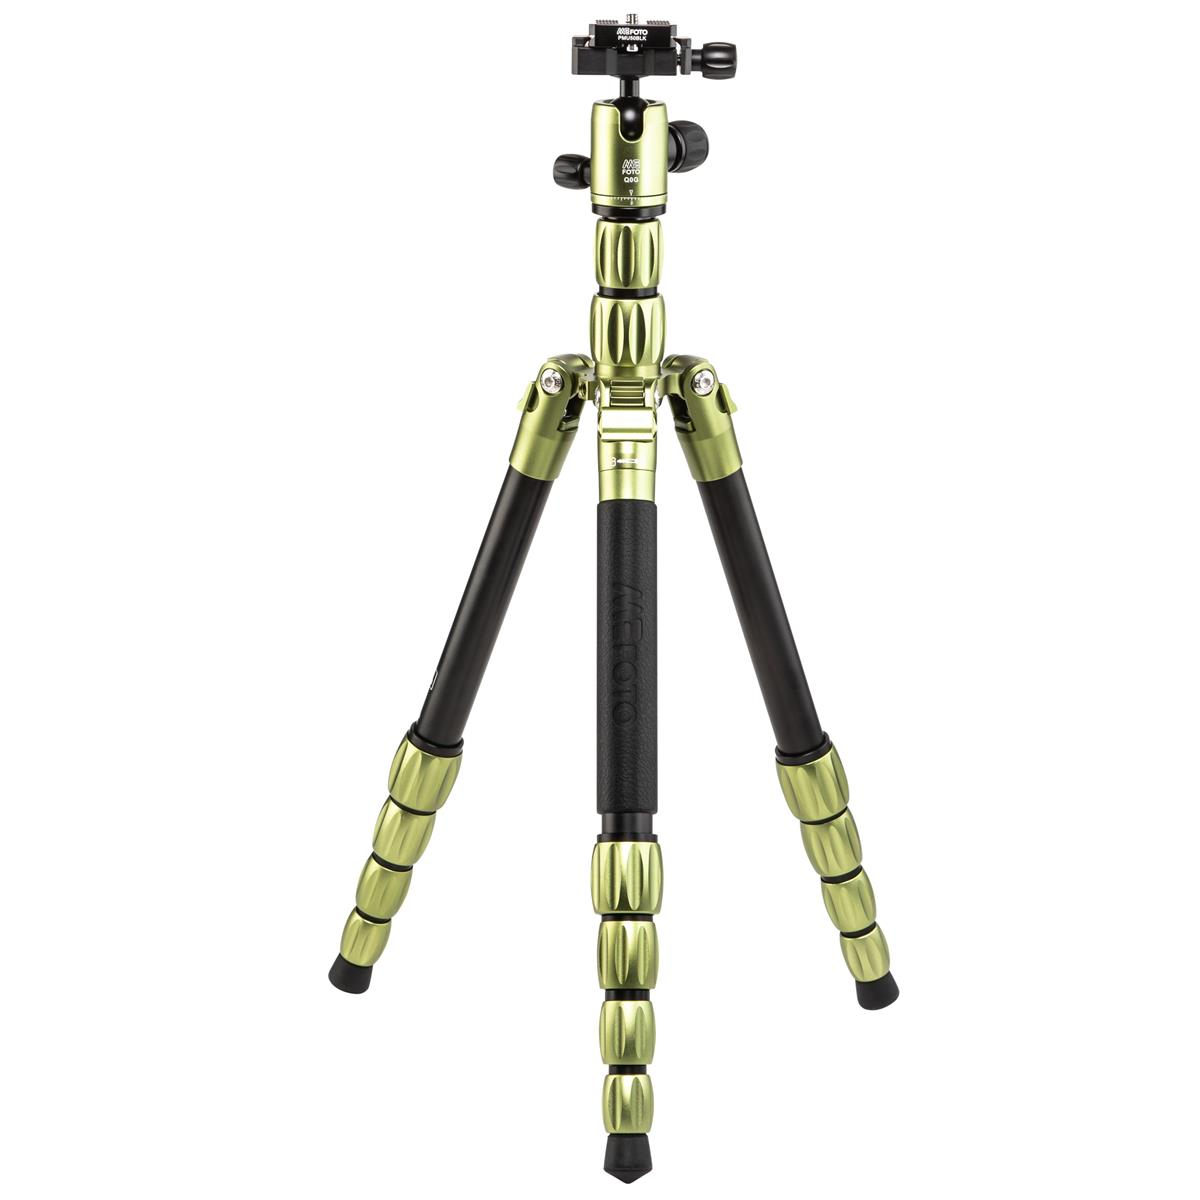 MeFOTO BackPacker S Travel Tripod (Green Aluminum)